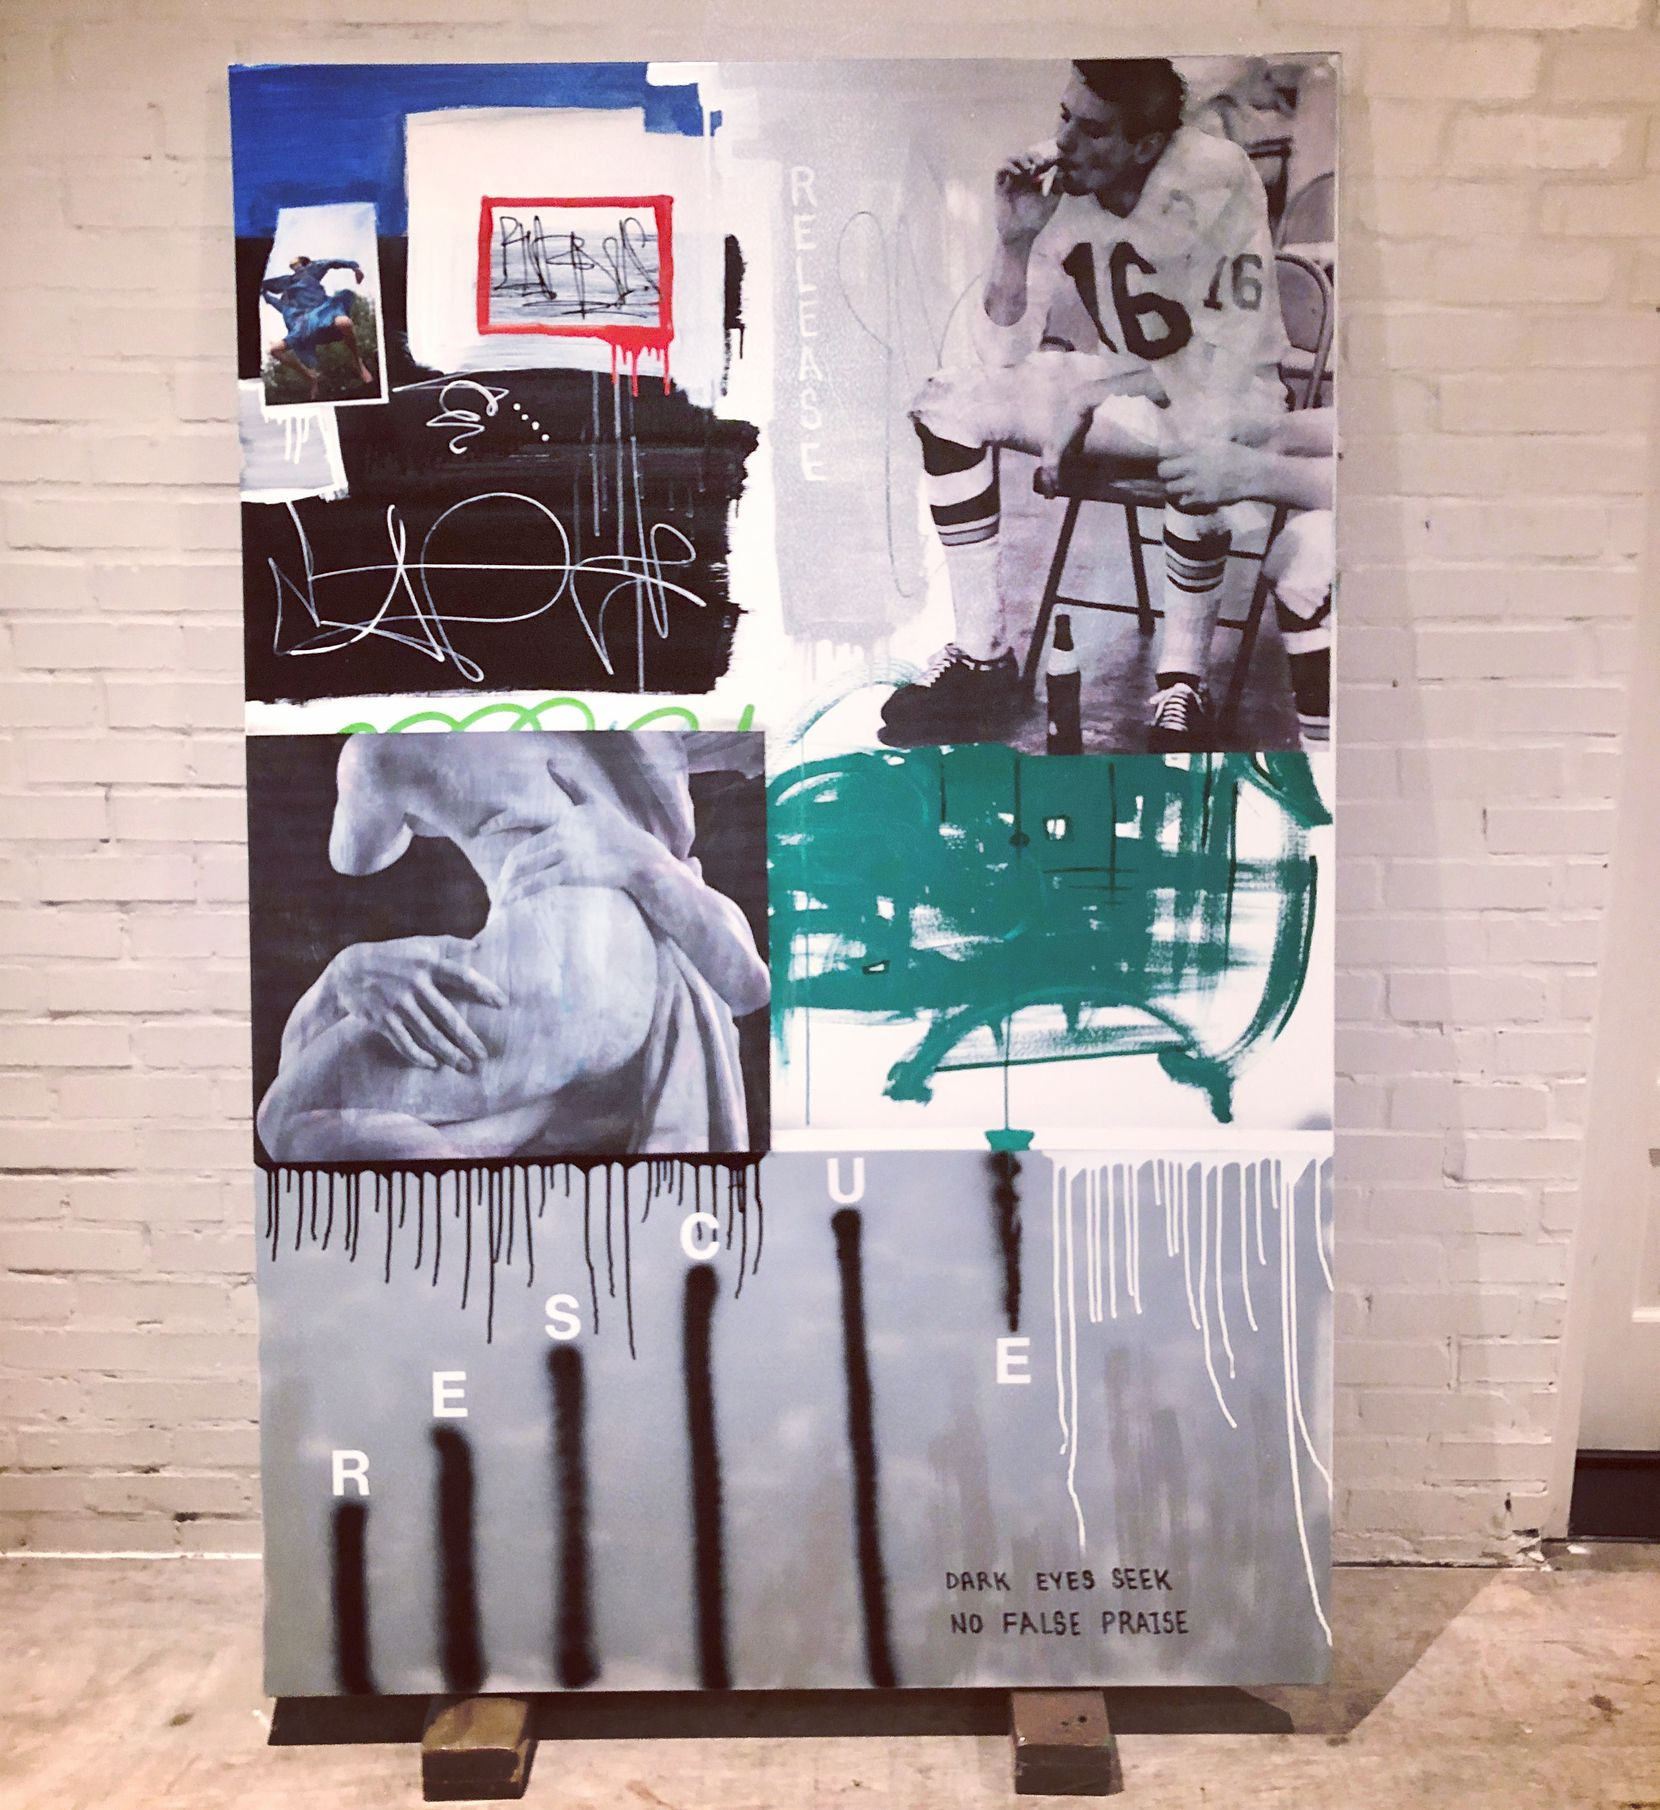 The work of William Atkinson contains elements of abstract expressionism, street art, graffiti, reappropriated imagery and typography.